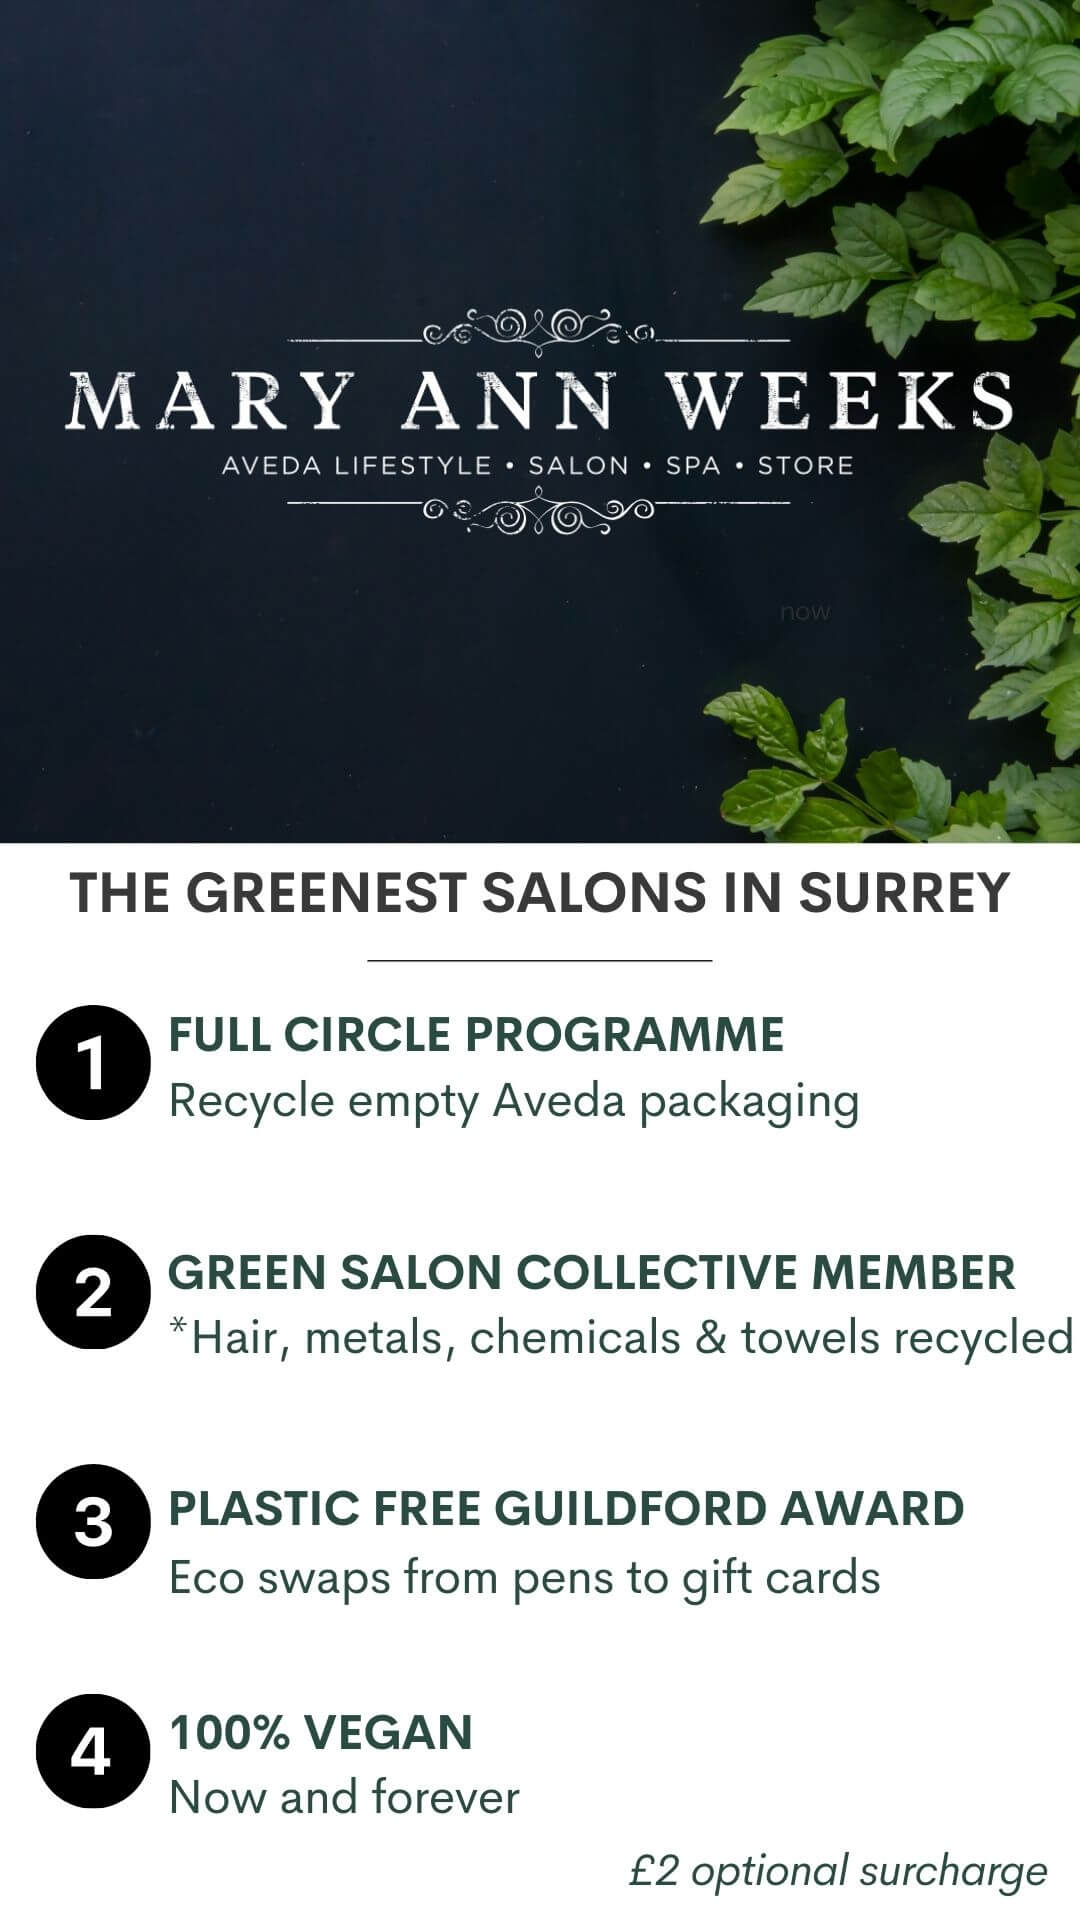 MARY ANN WEEKS IS THE GREENEST SALON IN SURREY